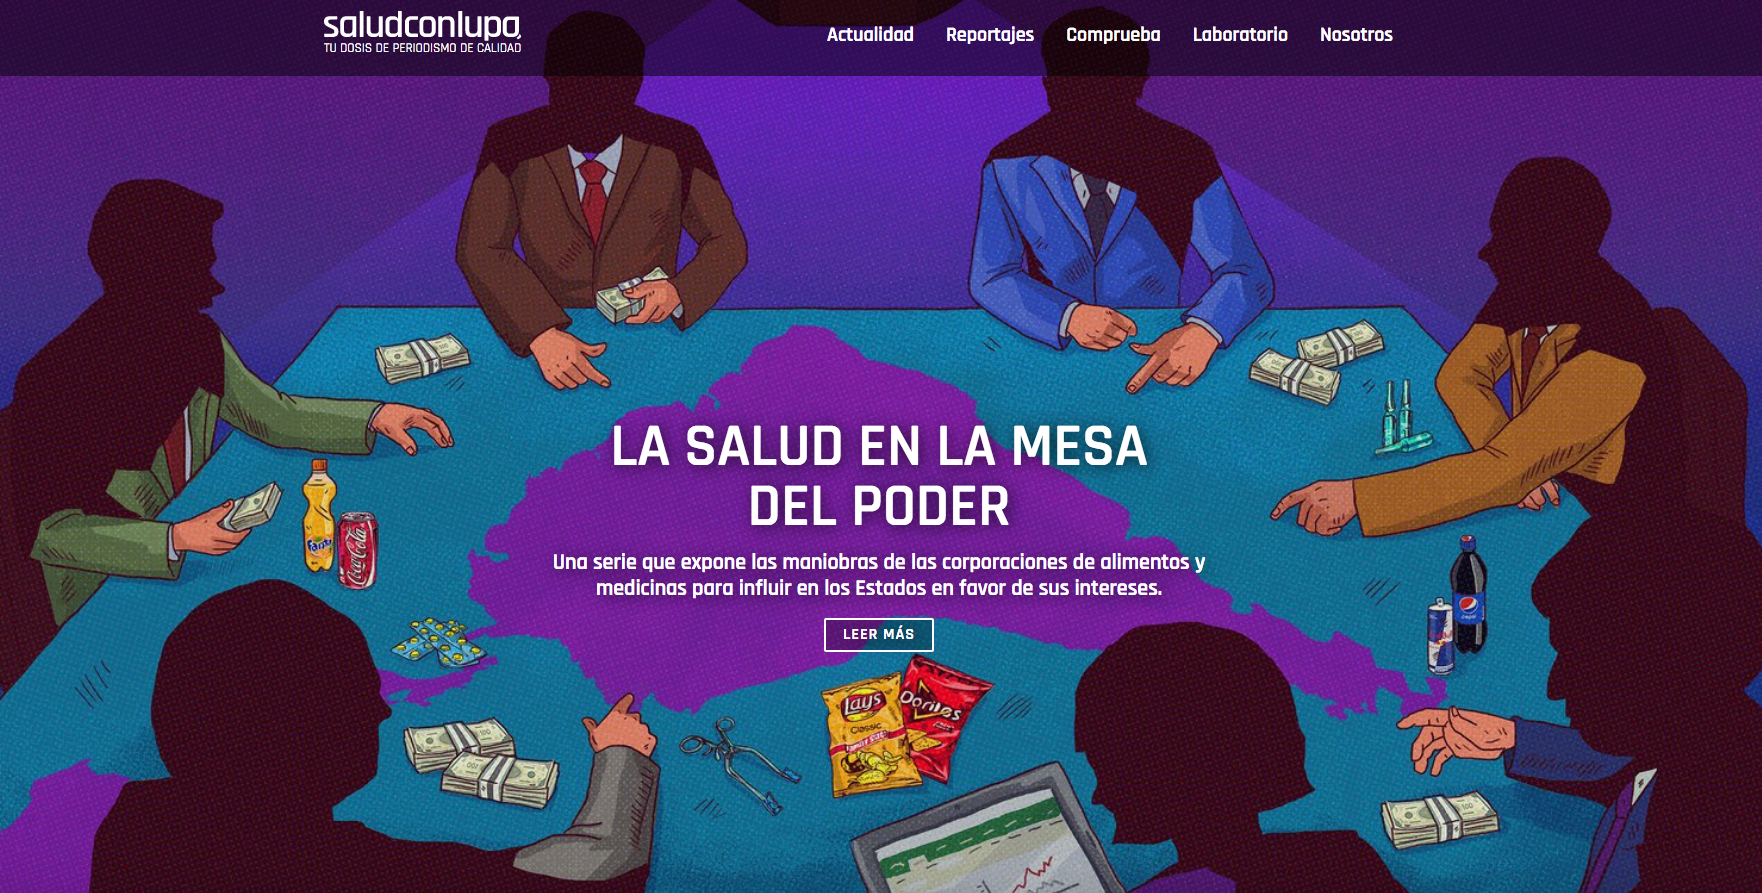 Salud con Lupa's first investigative report focused on food and medicine corporations. (Screenshot)